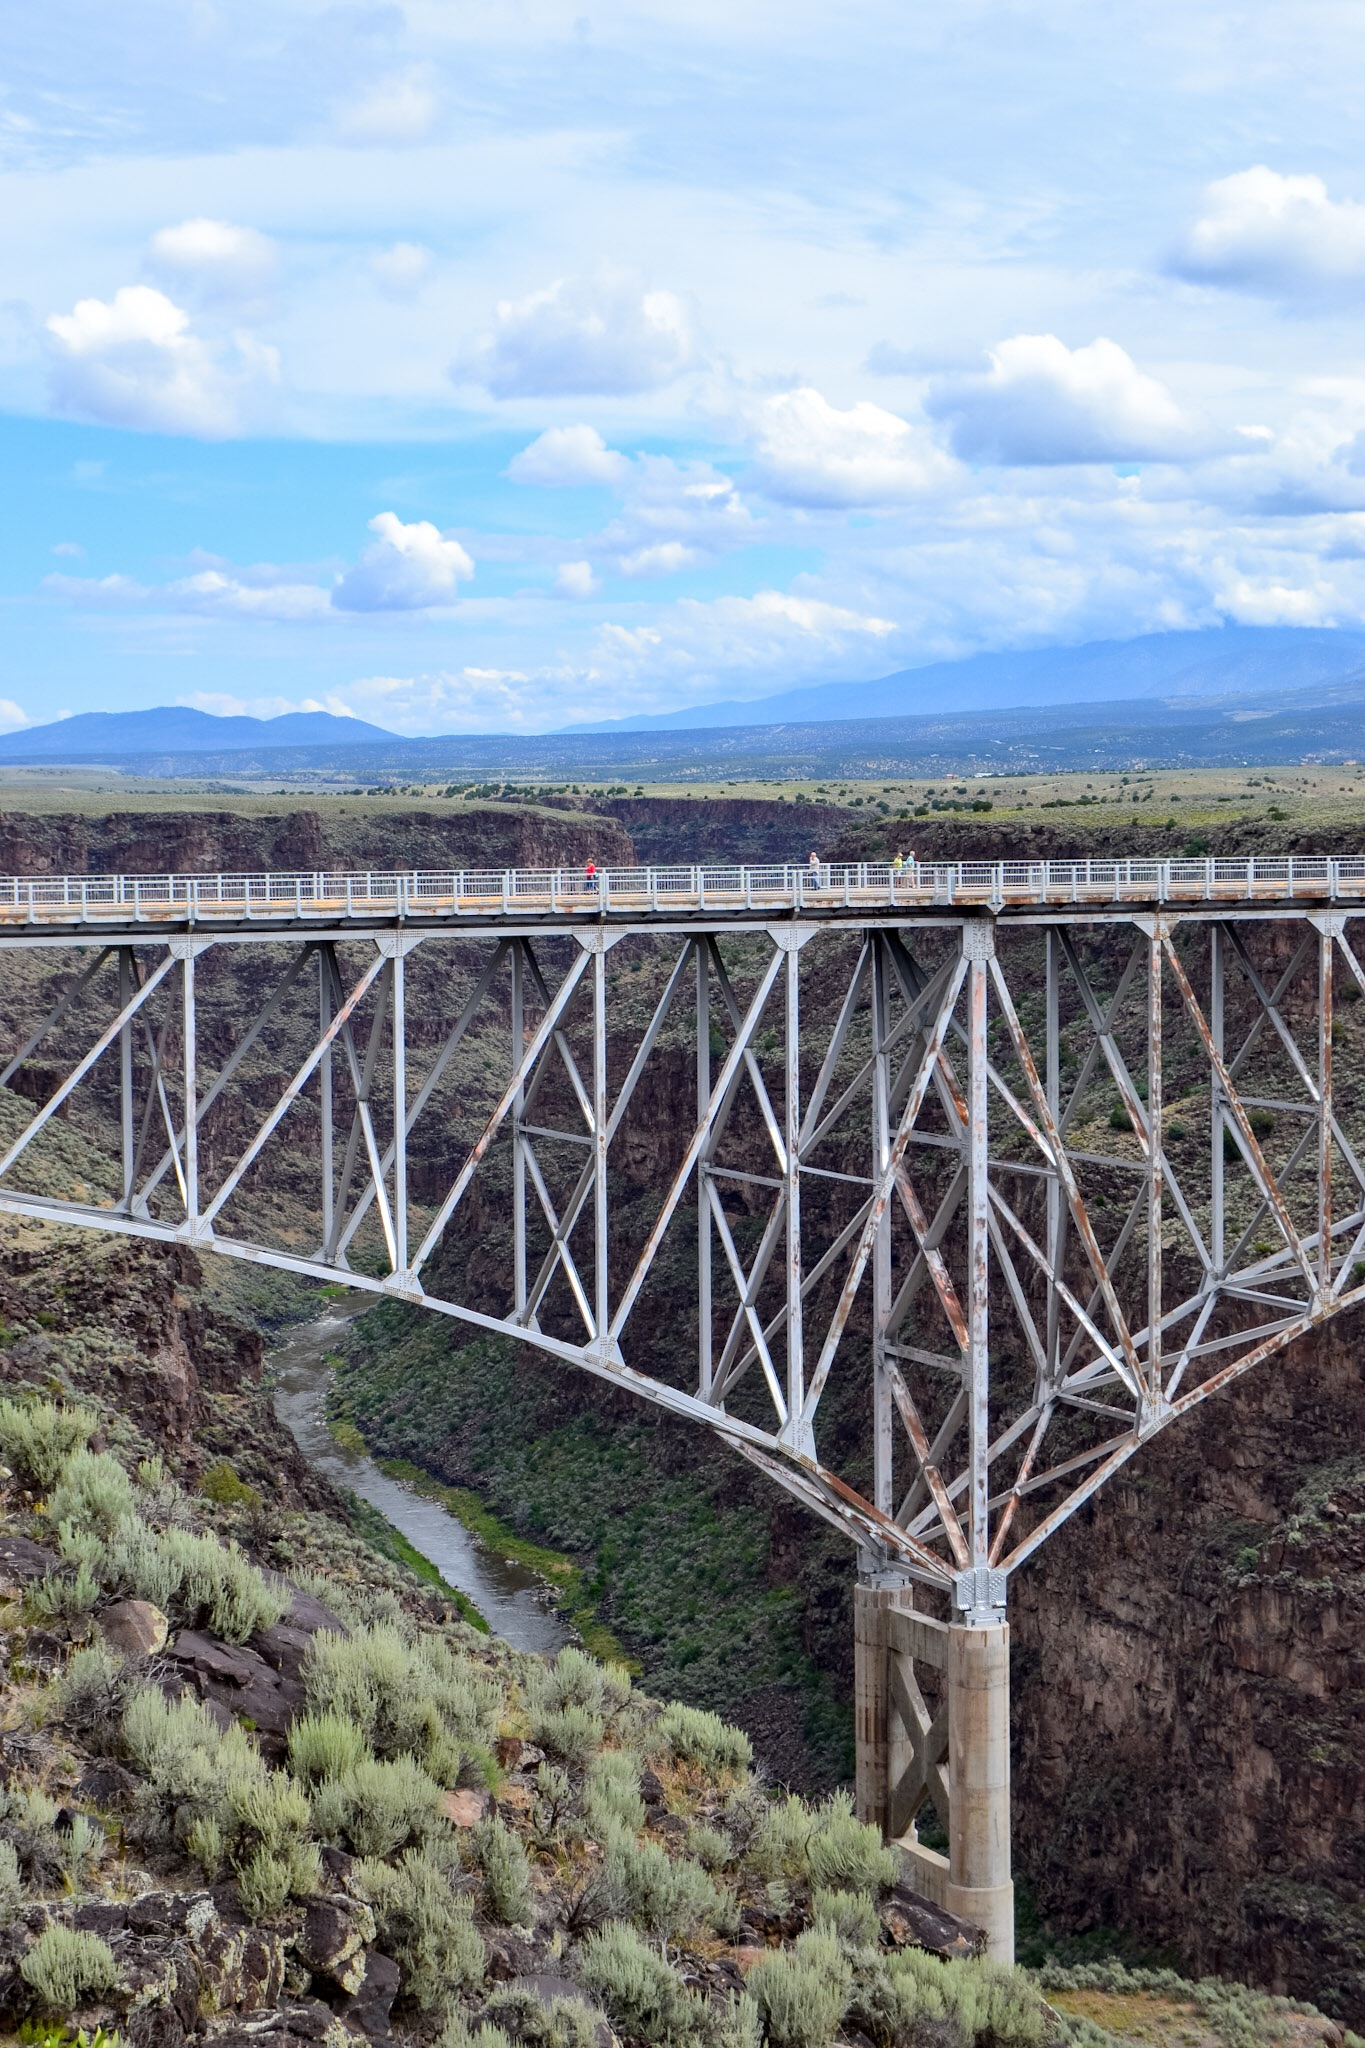 The Rio Grande River Gorge Bridge outside of Taos, New Mexico